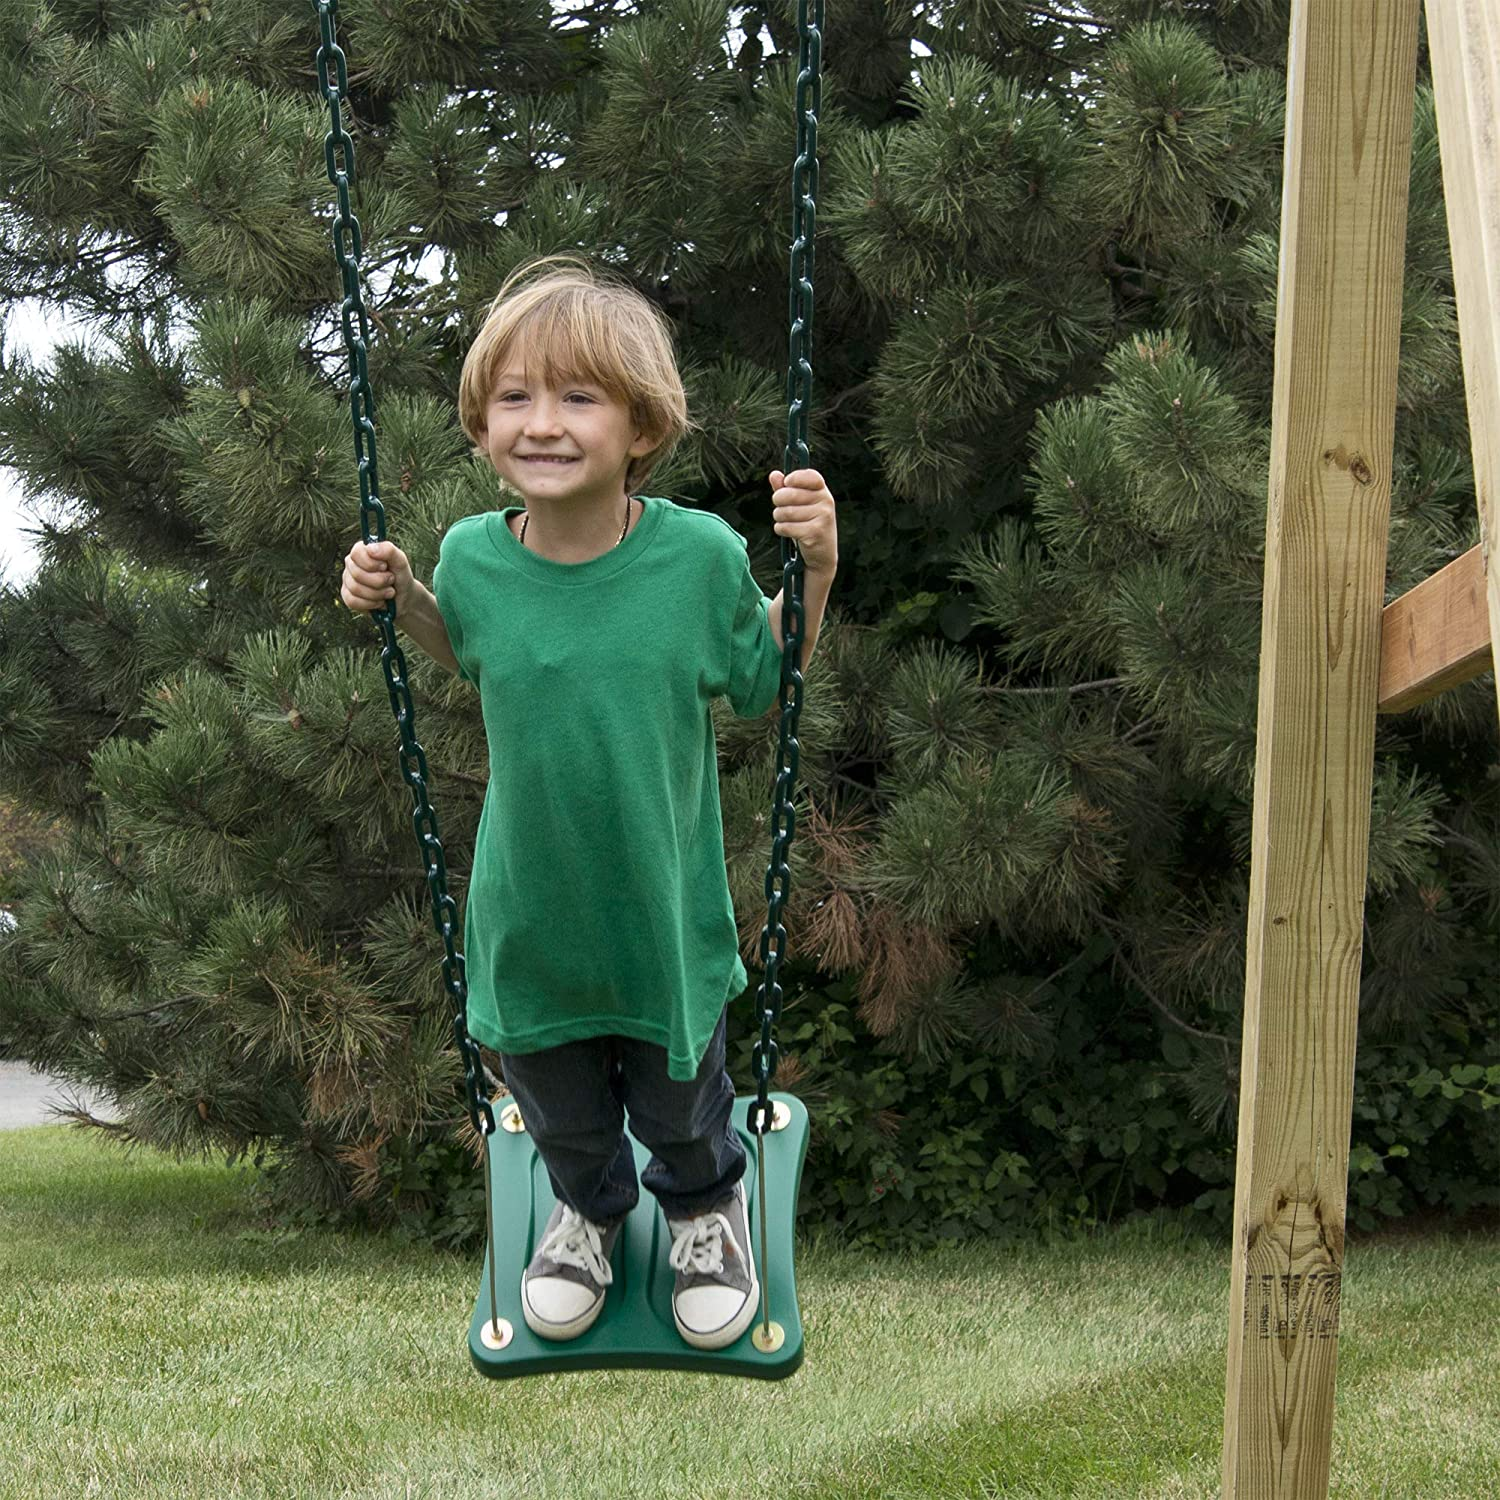 Swing-N-Slide WS 5110 Two Extreme Duty Yellow Swing Seats with a Stand-Up Swing Swing Set Refresher Bundle Yellow